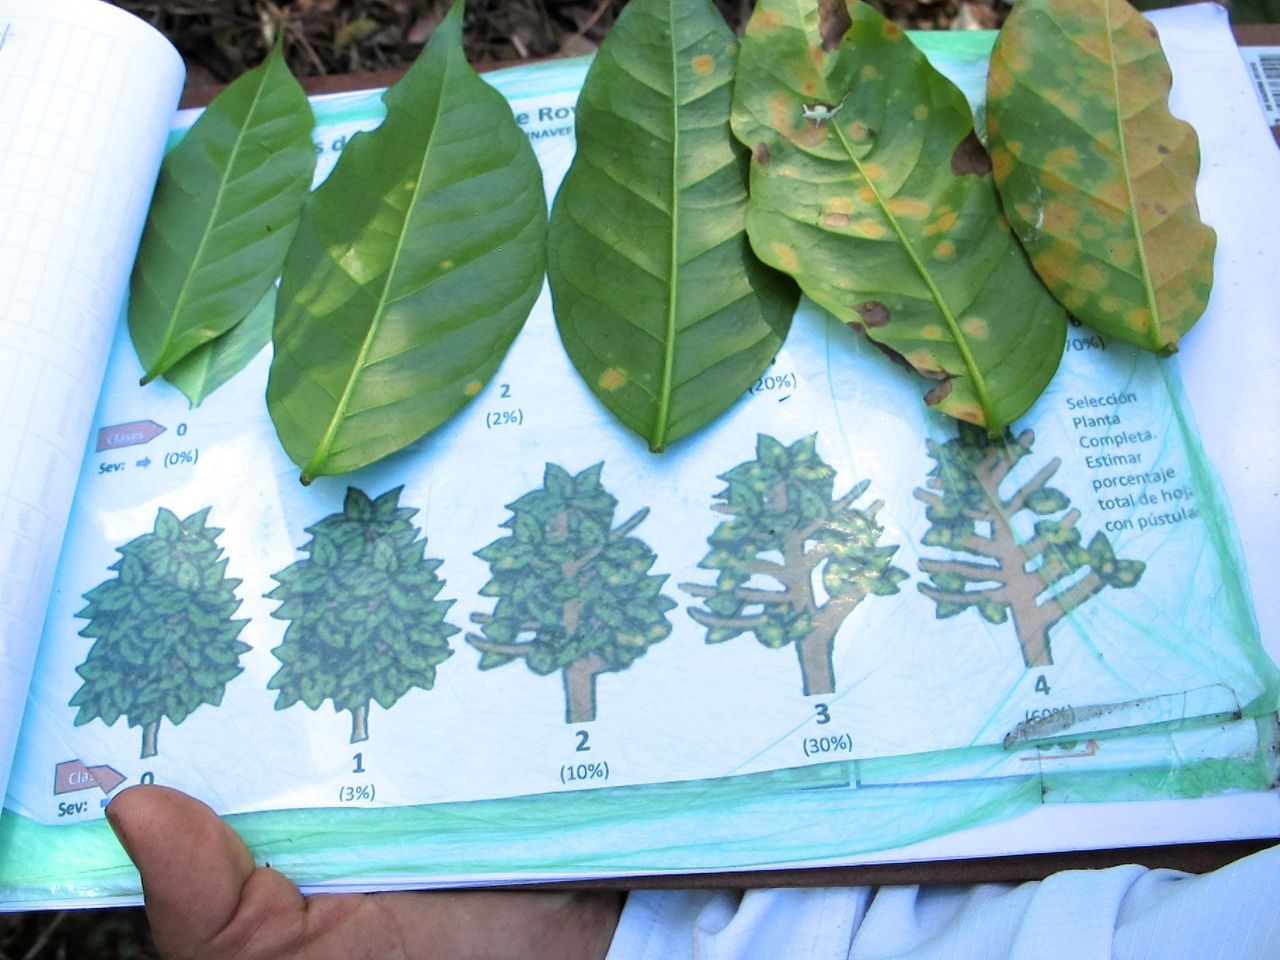 A Coffee & Climate agronomist demonstrates the evolution of coffee rust.